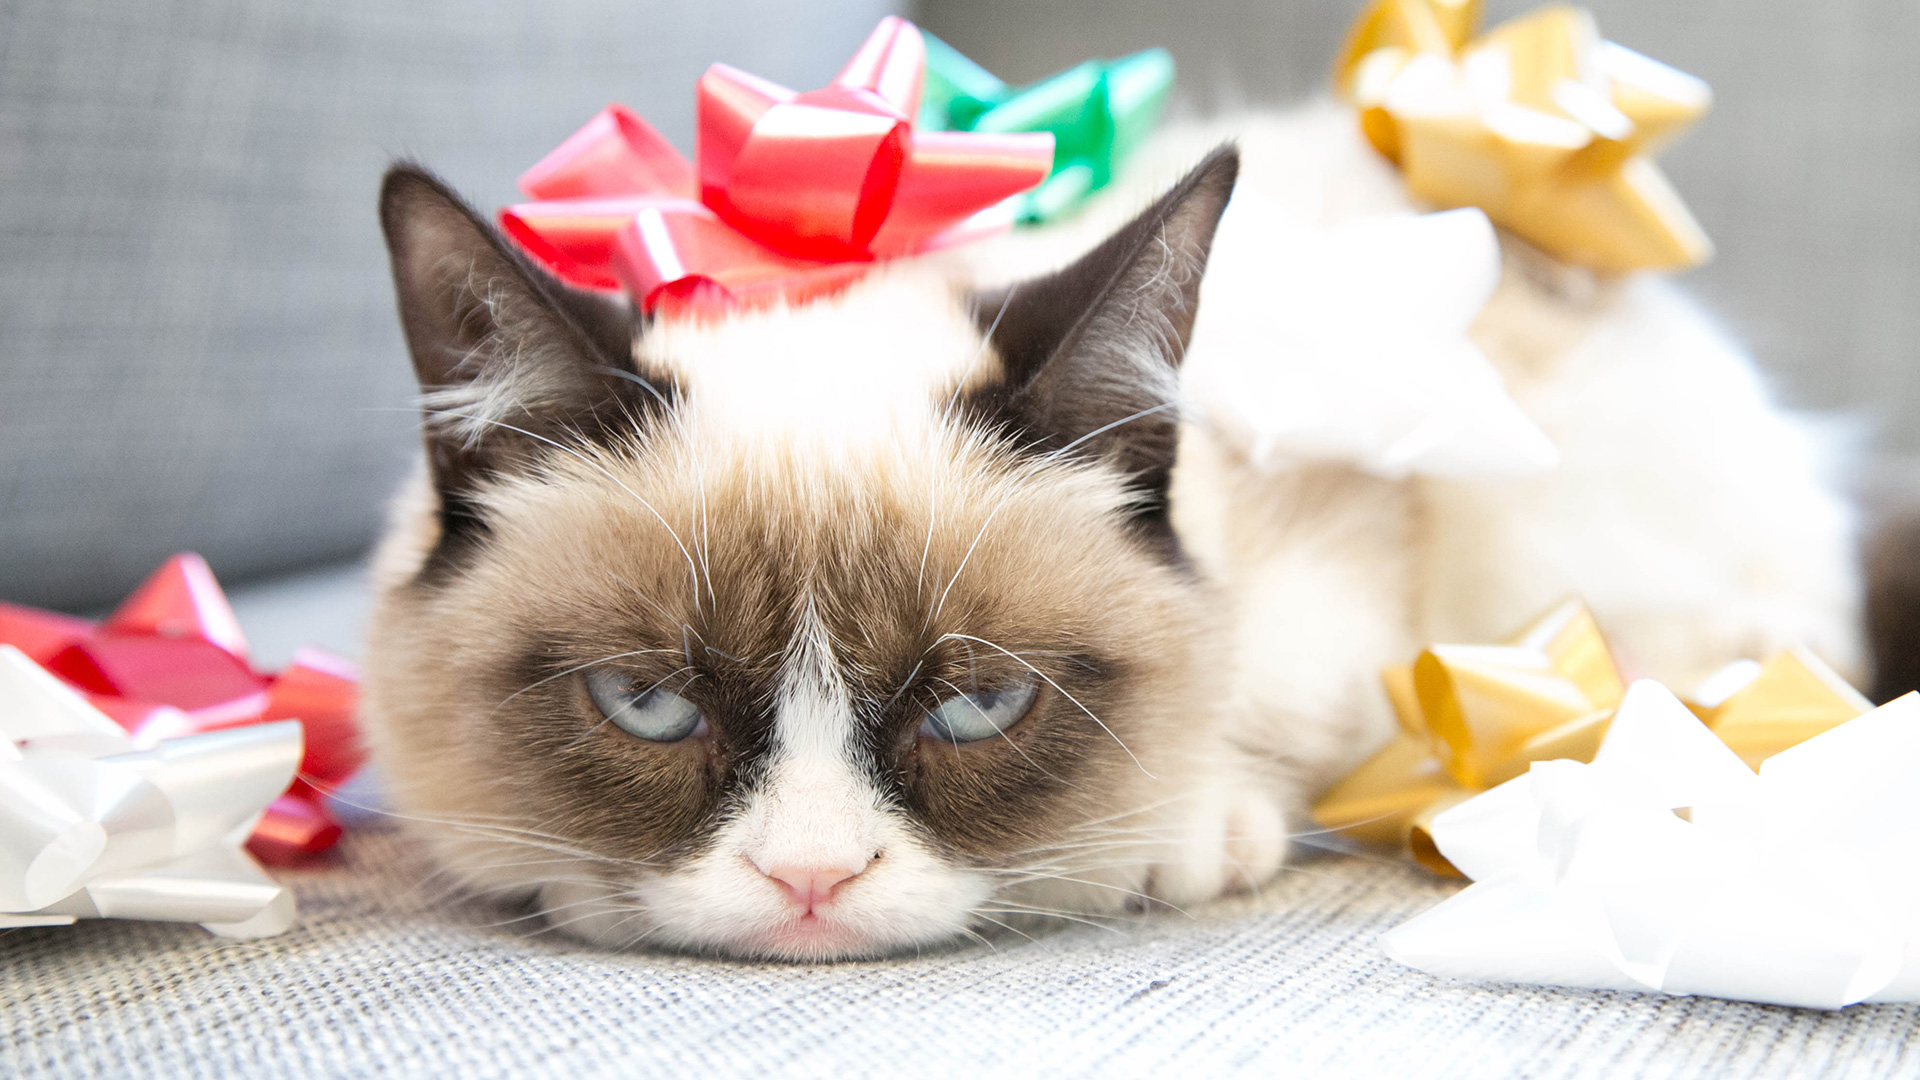 5 ways the internet has ruined Christmas - Memeburn